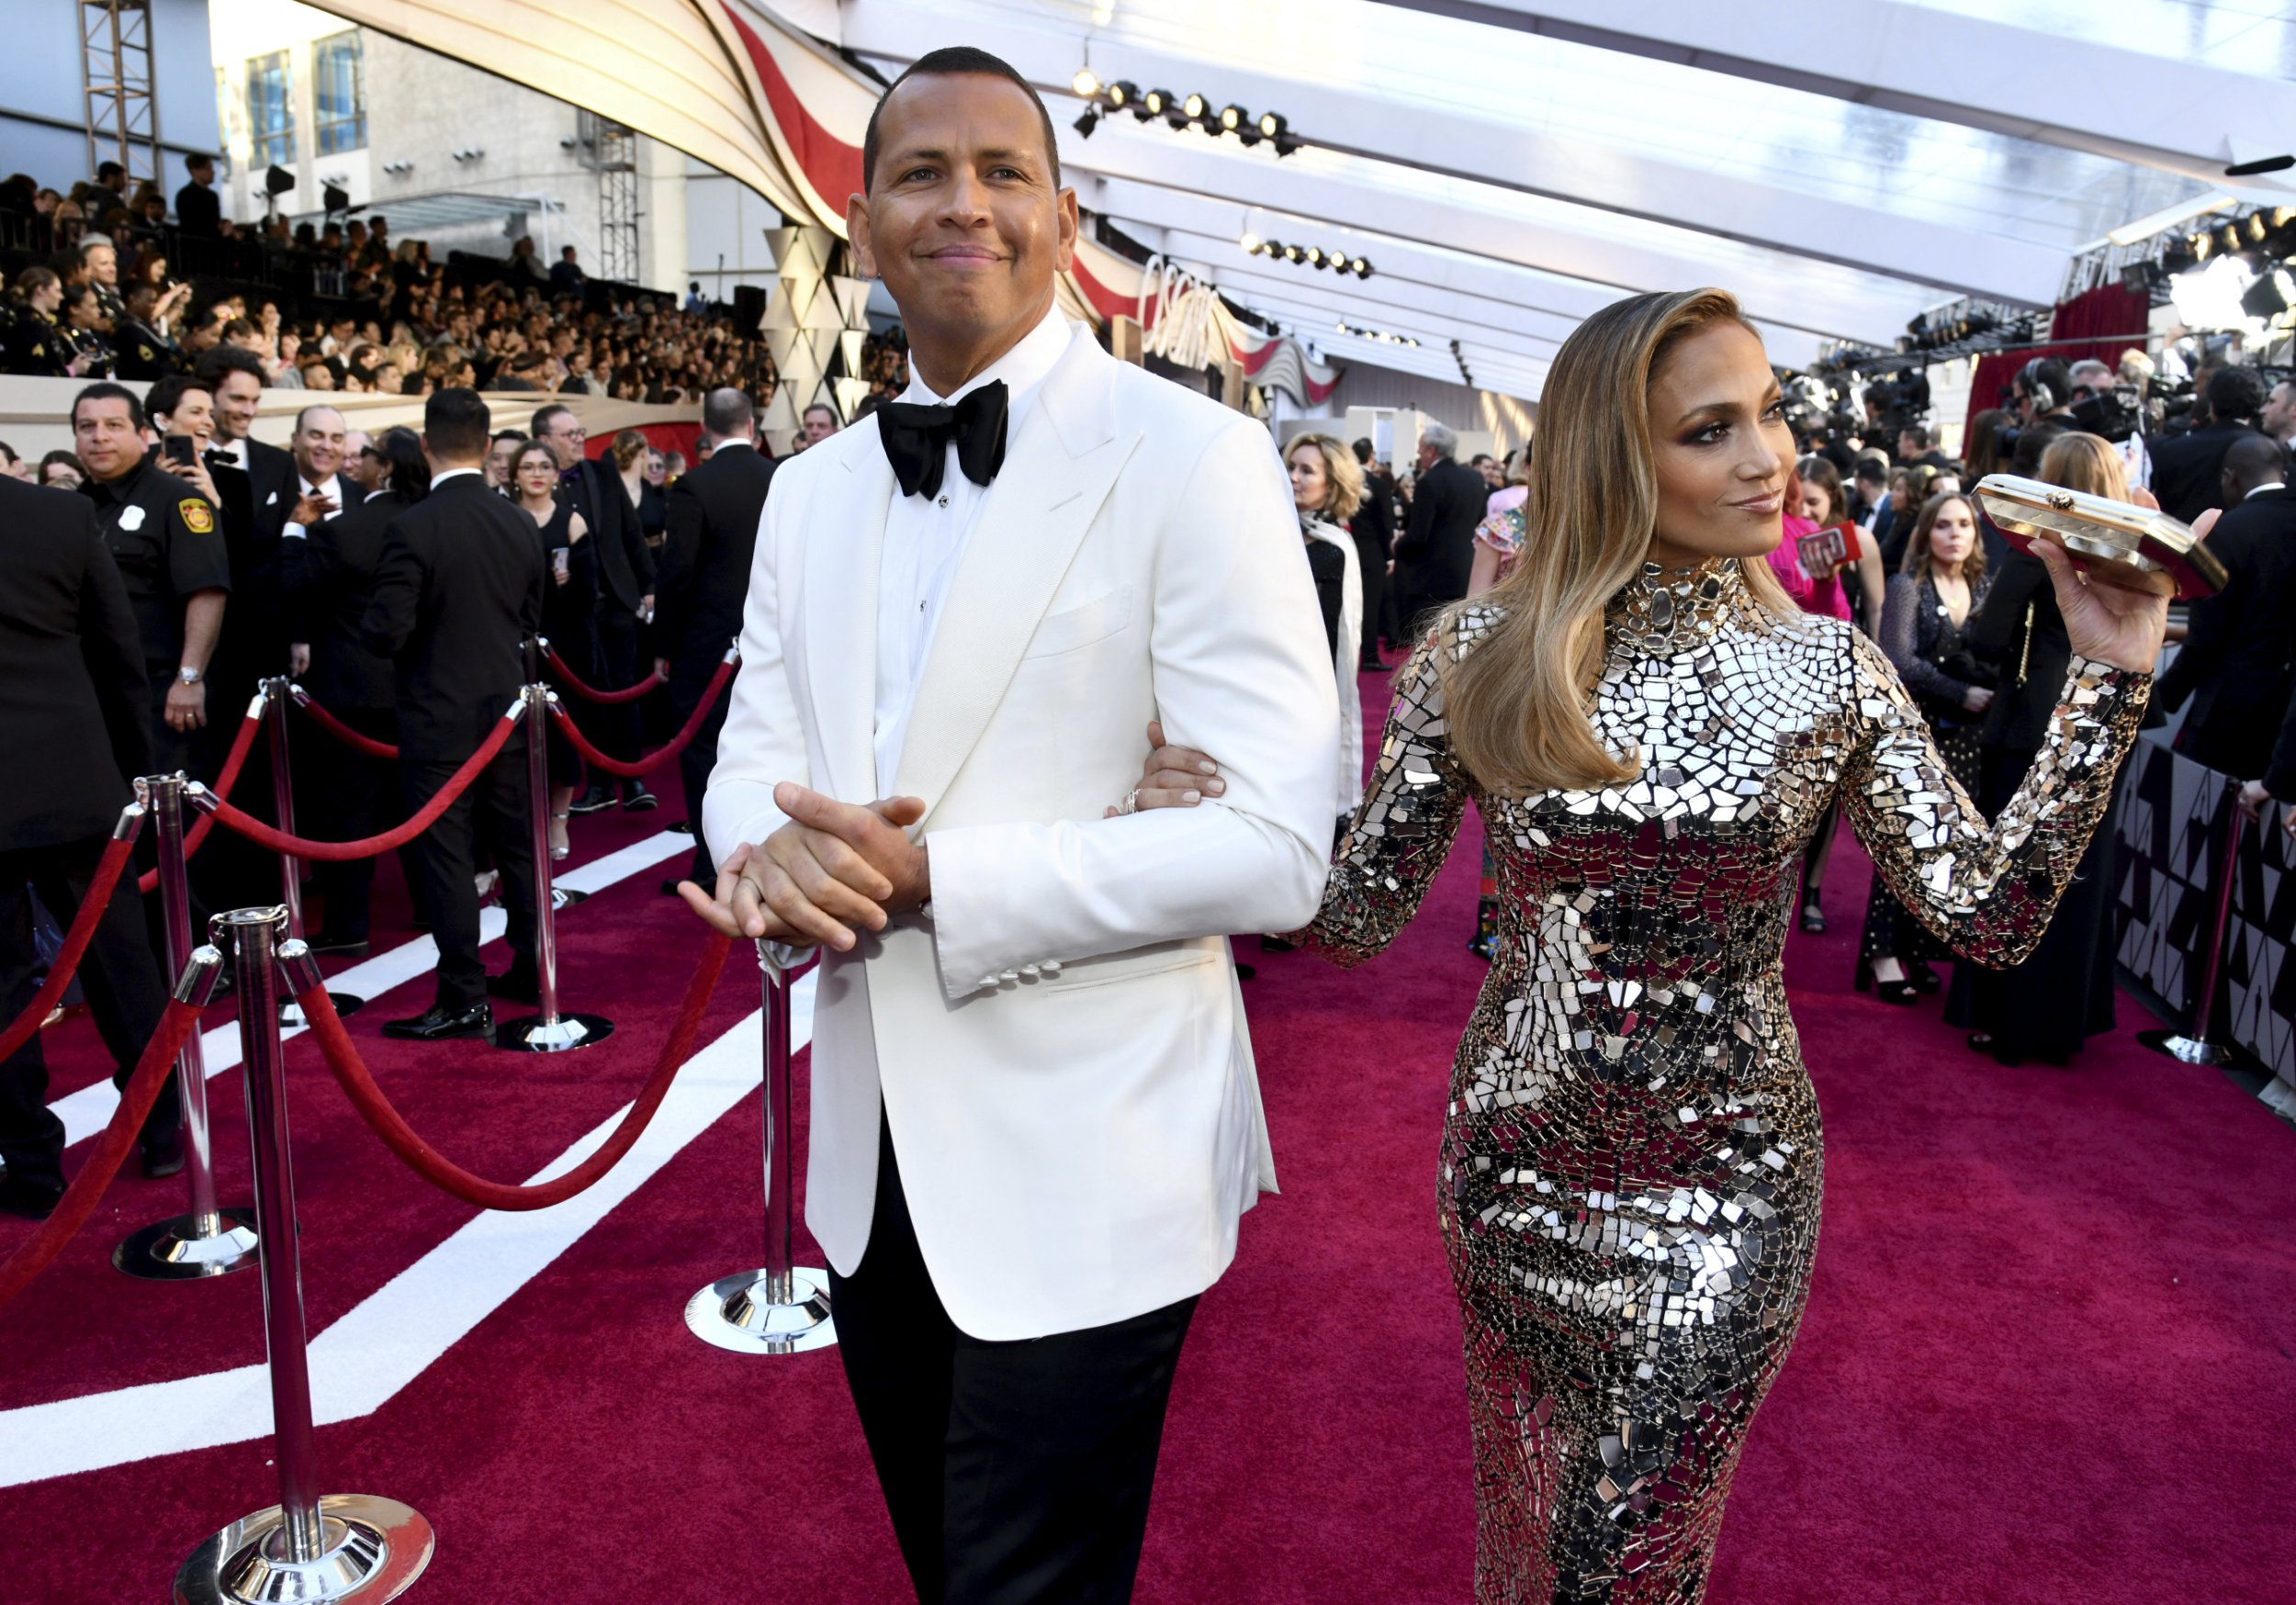 Alex Rodriguez not cheating on Jennifer Lopez says Jose Canesco's ex-wife: 'I did not sleep with him'